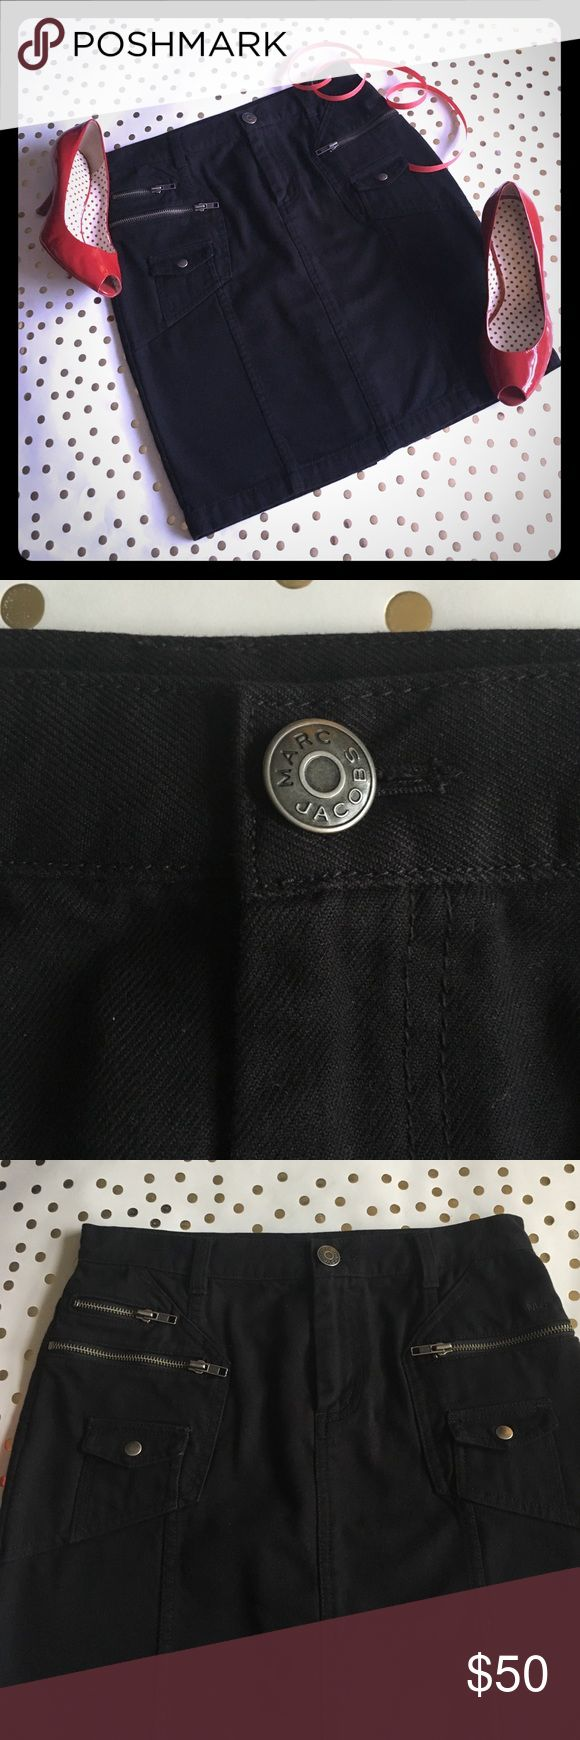 """🌟SALE!🌟MARC JACOBS Denim Skirt, NEARLY NEW! 🌟Fab designer label + fab design! 🌟Zip and snap pockets galore add a bit of edge but don't detract from the skirt's gorgeously clean, modern lines. Subtle MJ monogram as shown; interesting seaming on slit. A not-so-basic basic--turn heads wherever you go! 14"""" flat waist; 17.5 flat hips; ca. 19"""" long. 100% cotton, brushed to wonderful softness inside. 😉This skirt (in a different wash) currently selling for $100 on T***sy!😉 Marc Jacobs Skirts"""